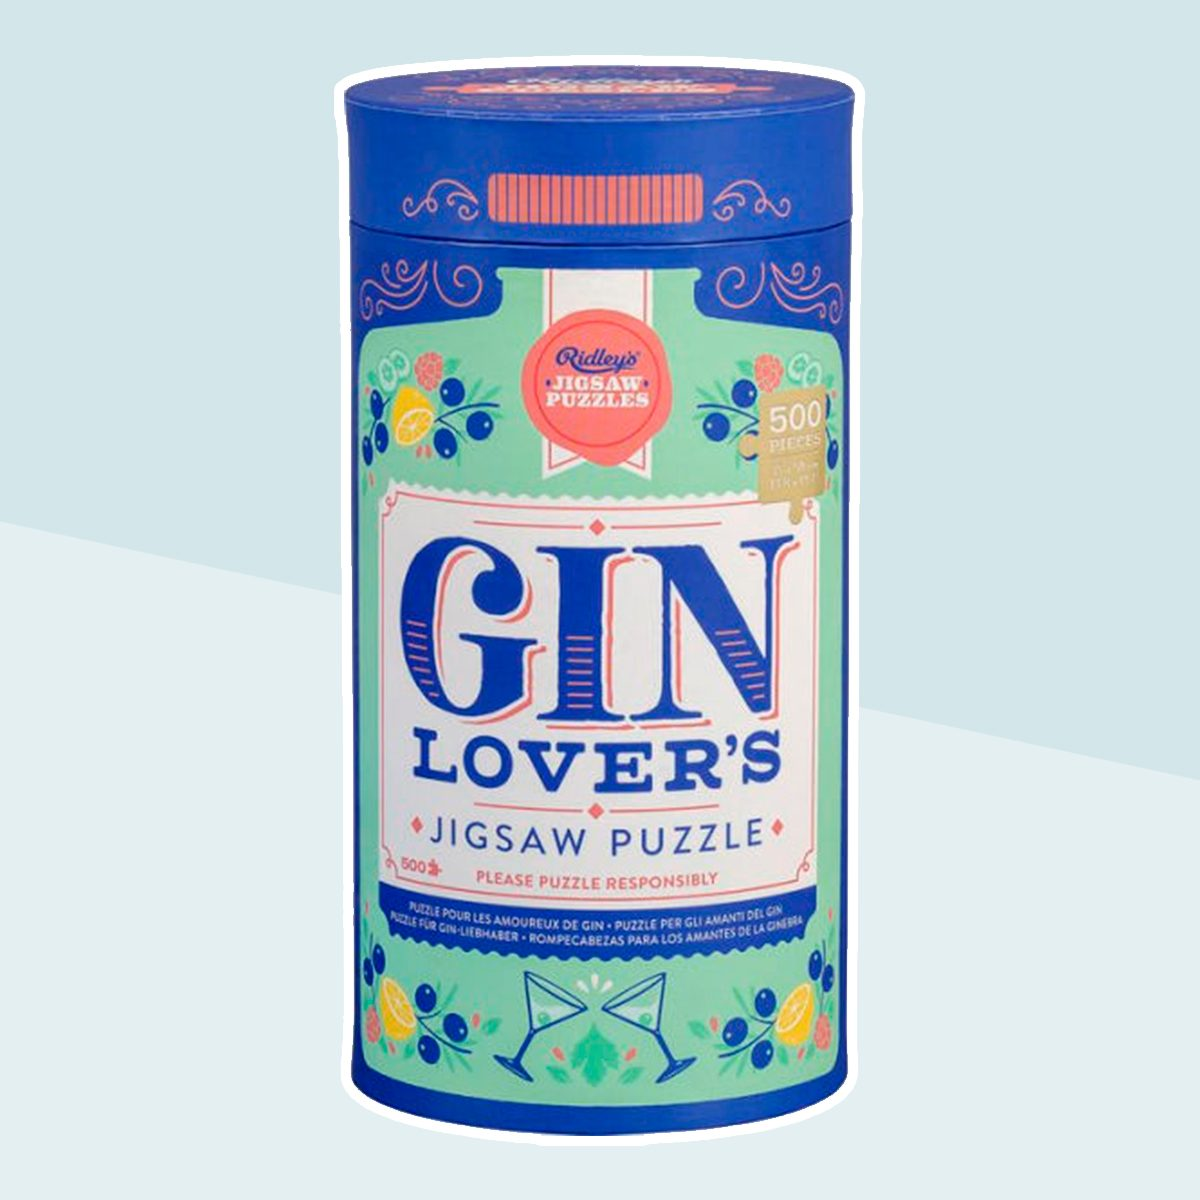 Ridley's Gin Lover's 500 Piece Jigsaw Puzzle